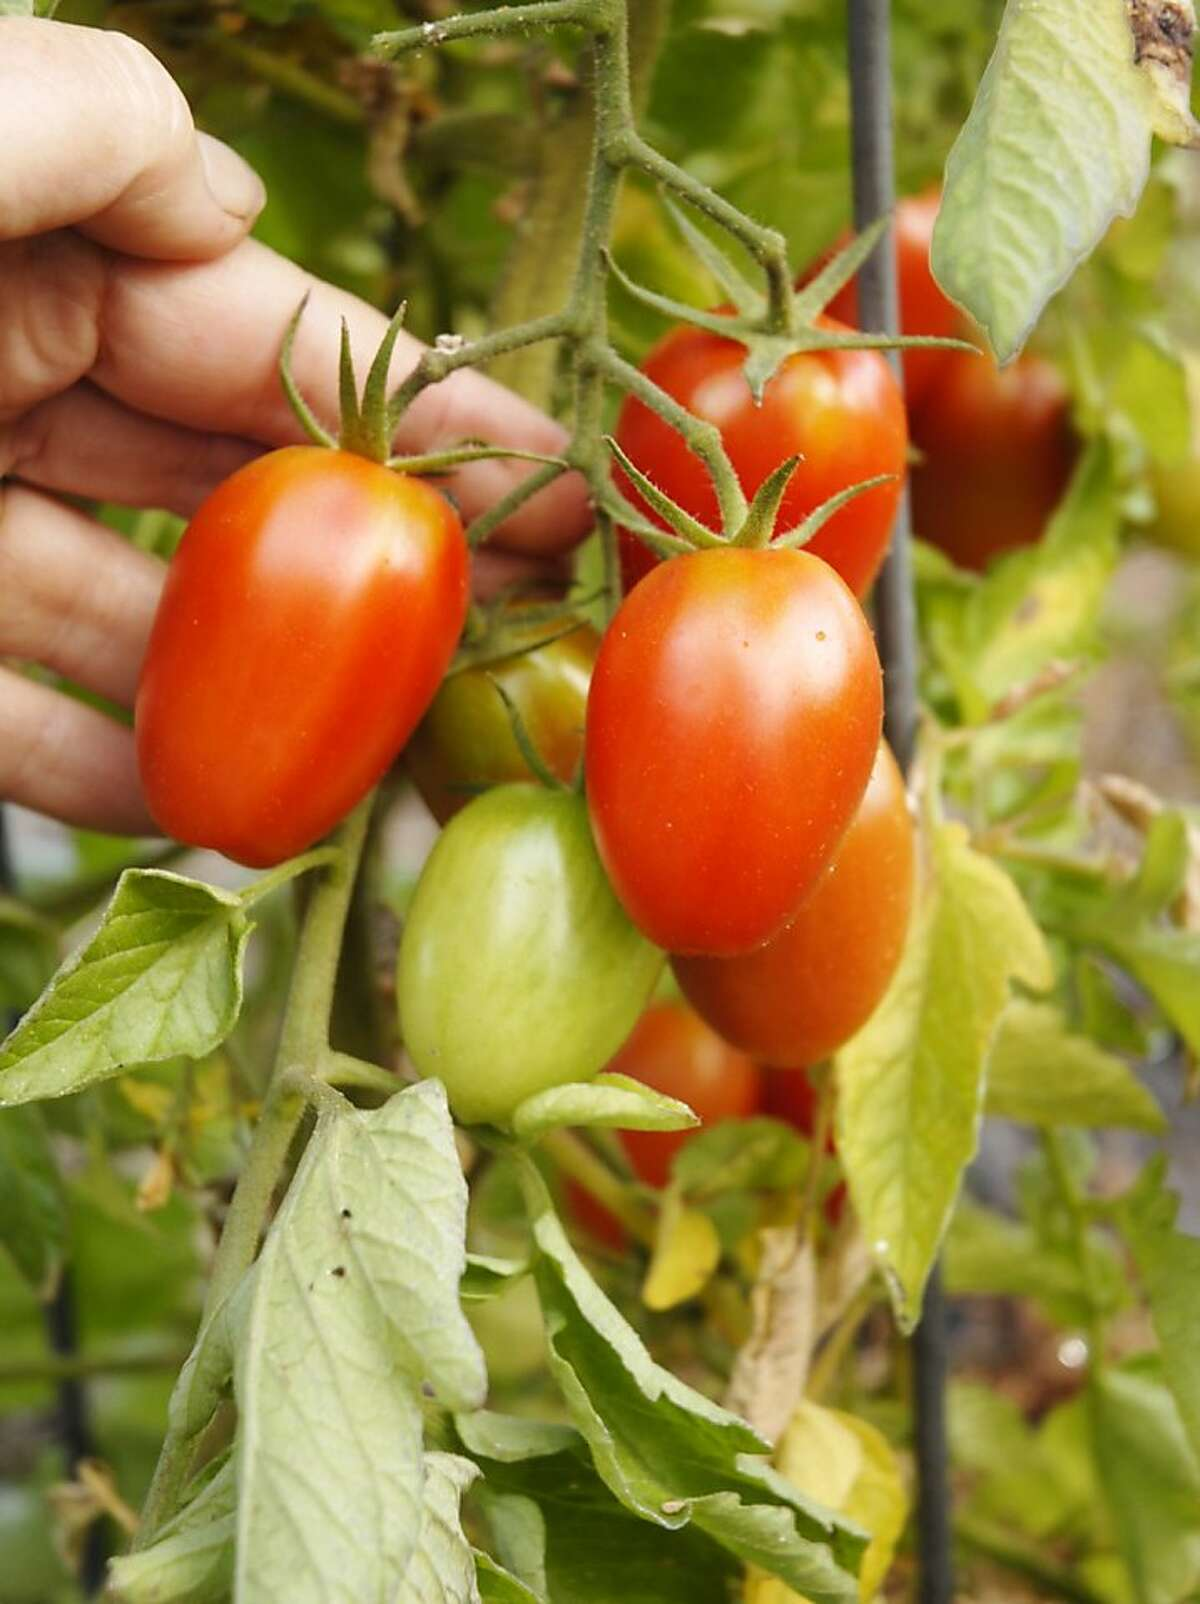 'Juliet' variety tomato shows fairly high resistance to tomato late blight and bears a heavy crop of small